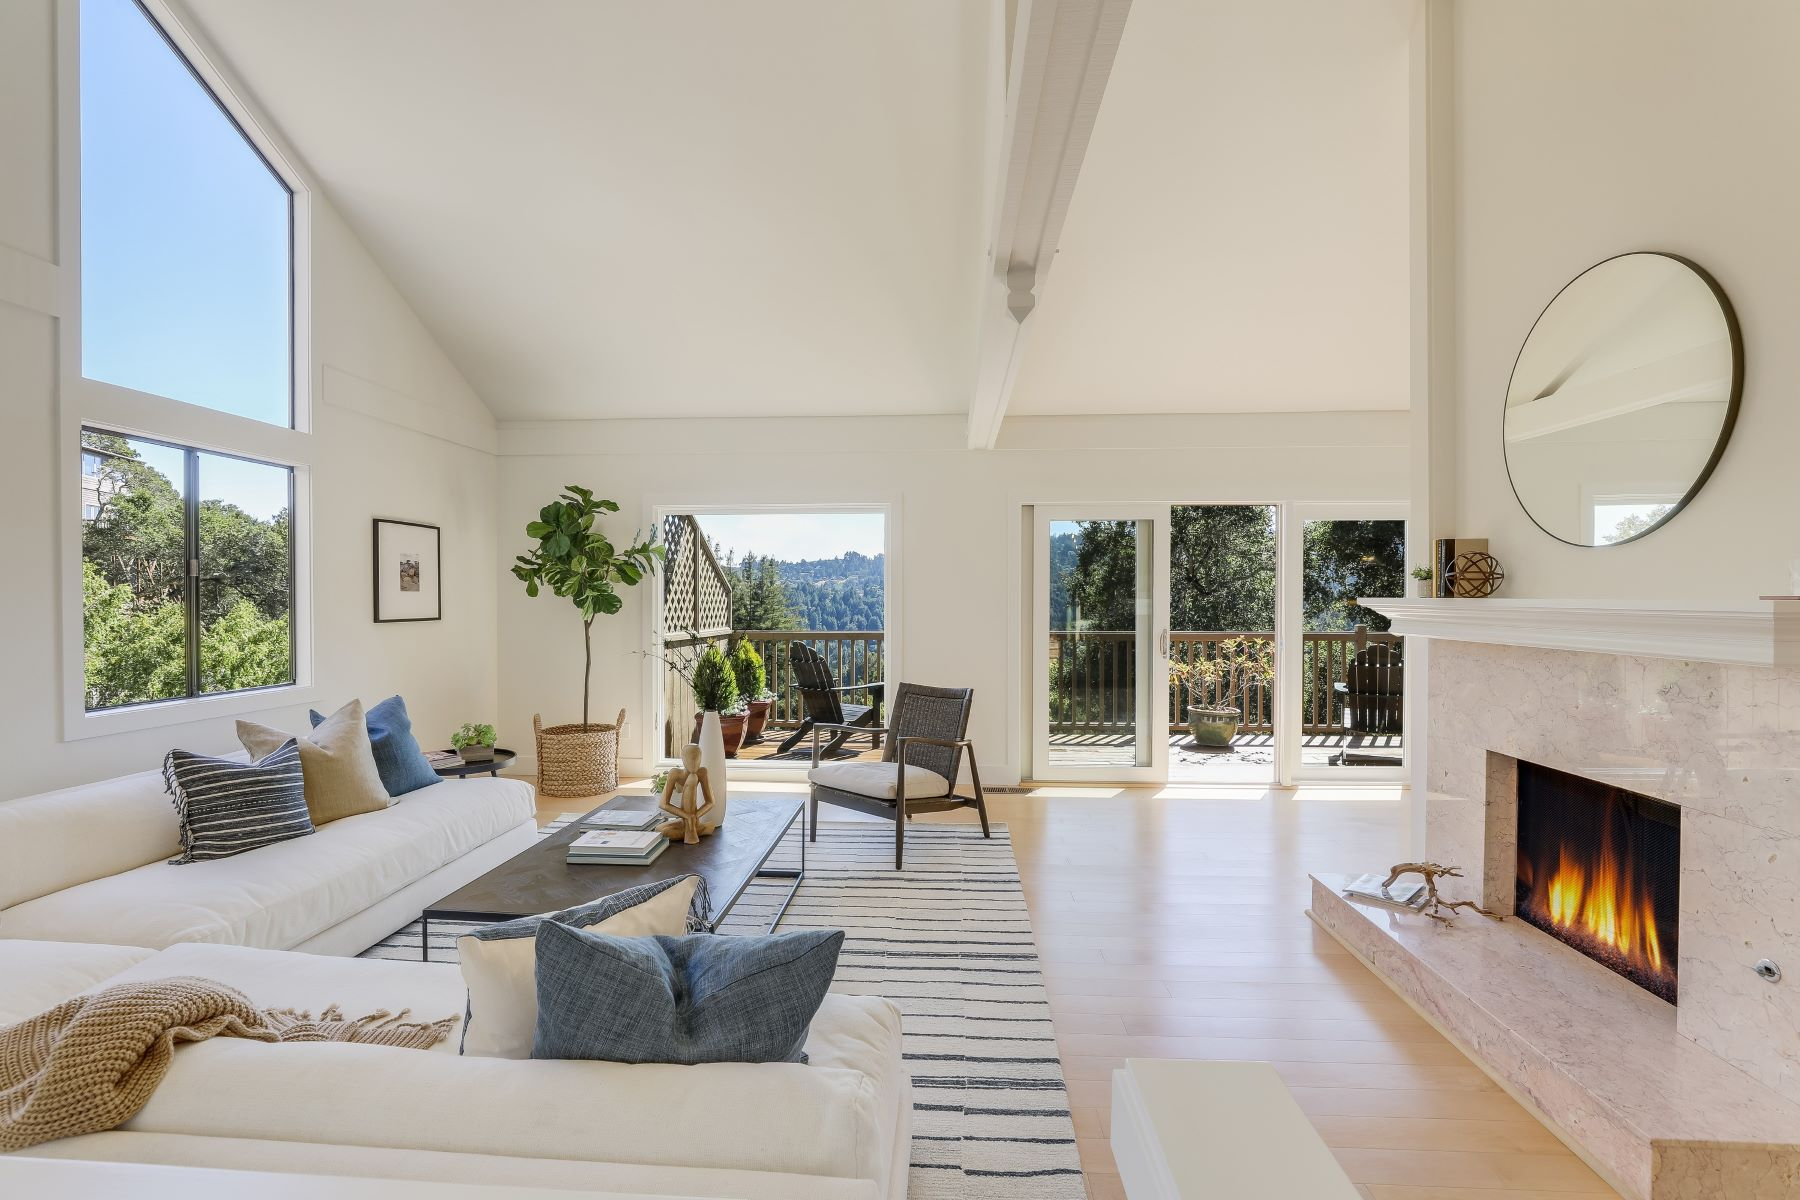 Single Family Homes のために 売買 アット Stunning Mill Valley Contemporary 54 Greenwood Way, Mill Valley, カリフォルニア 94941 アメリカ